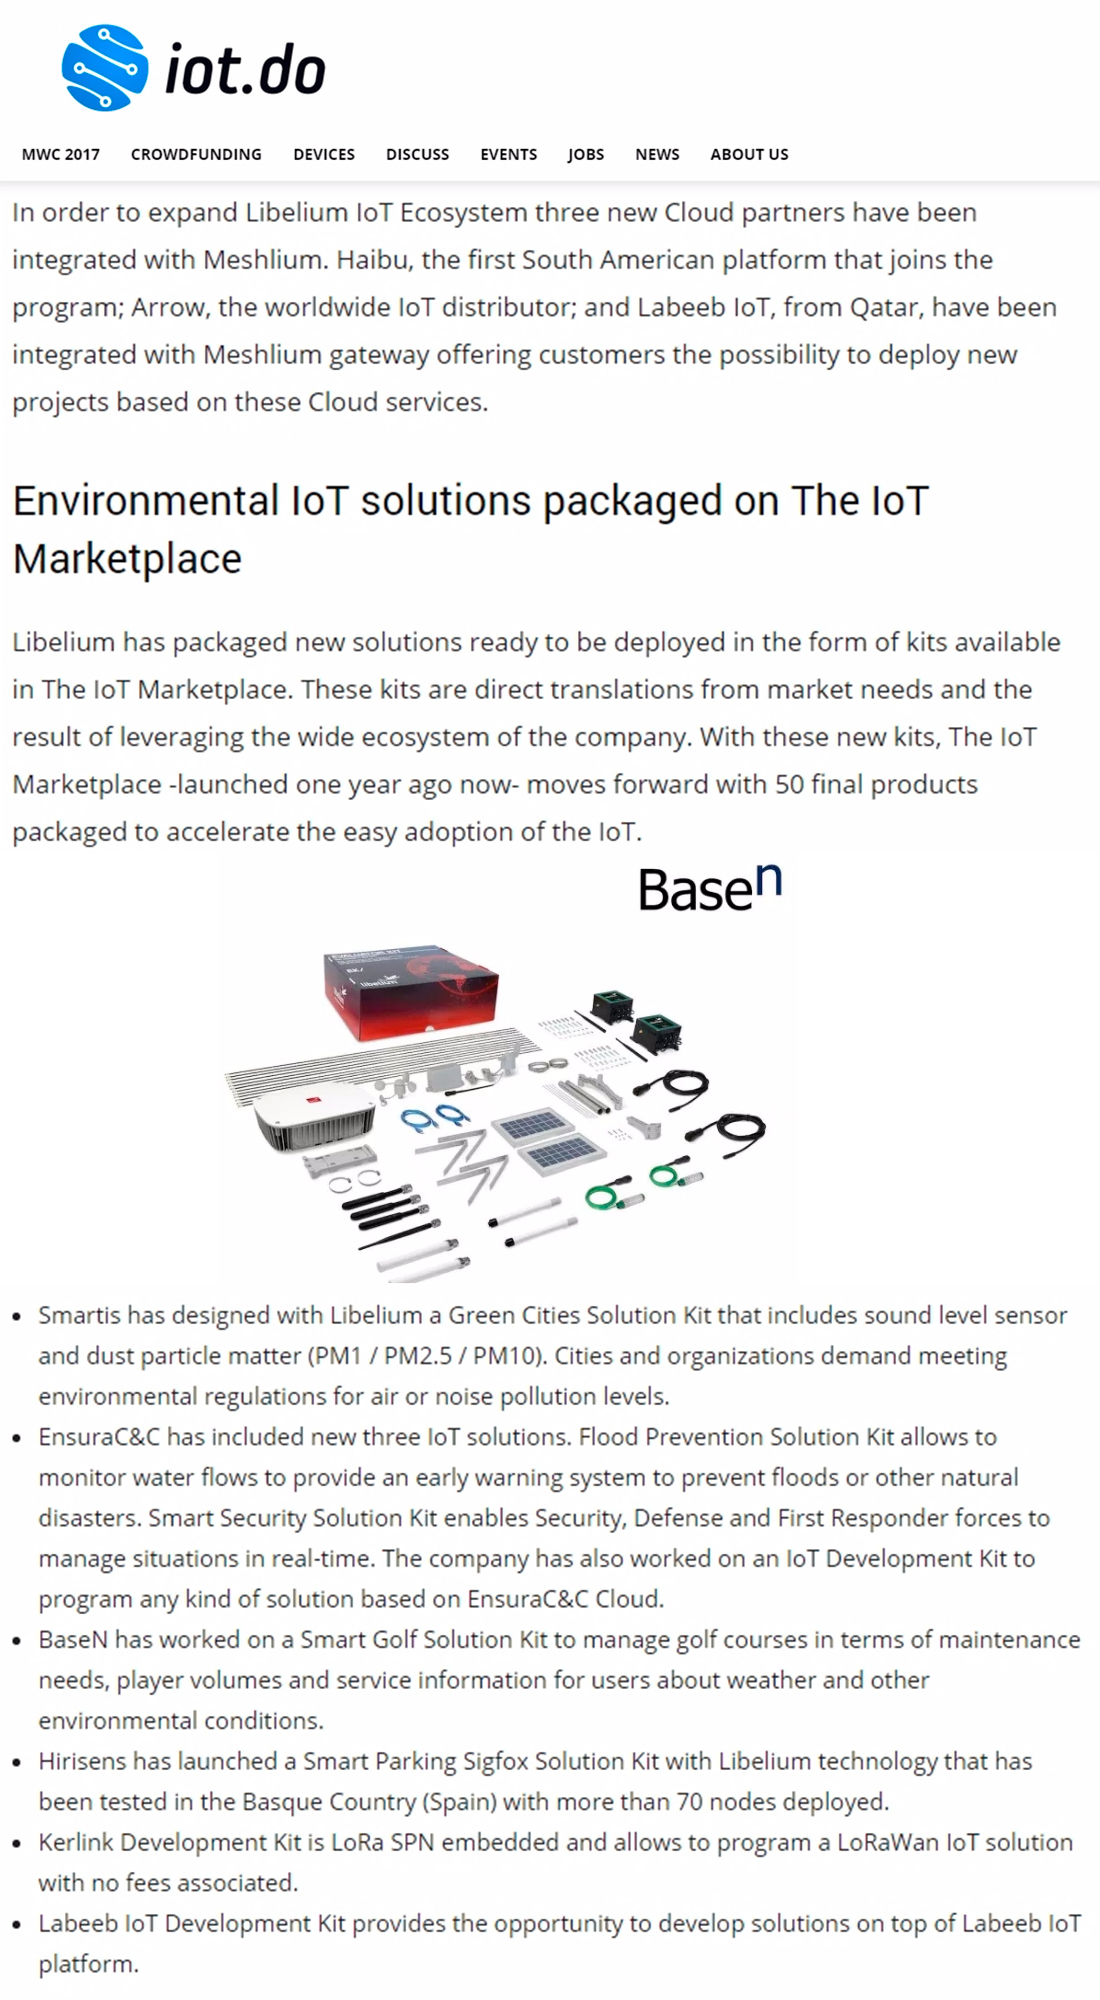 IoT.do – MWC17: Libelium presents IoT solutions